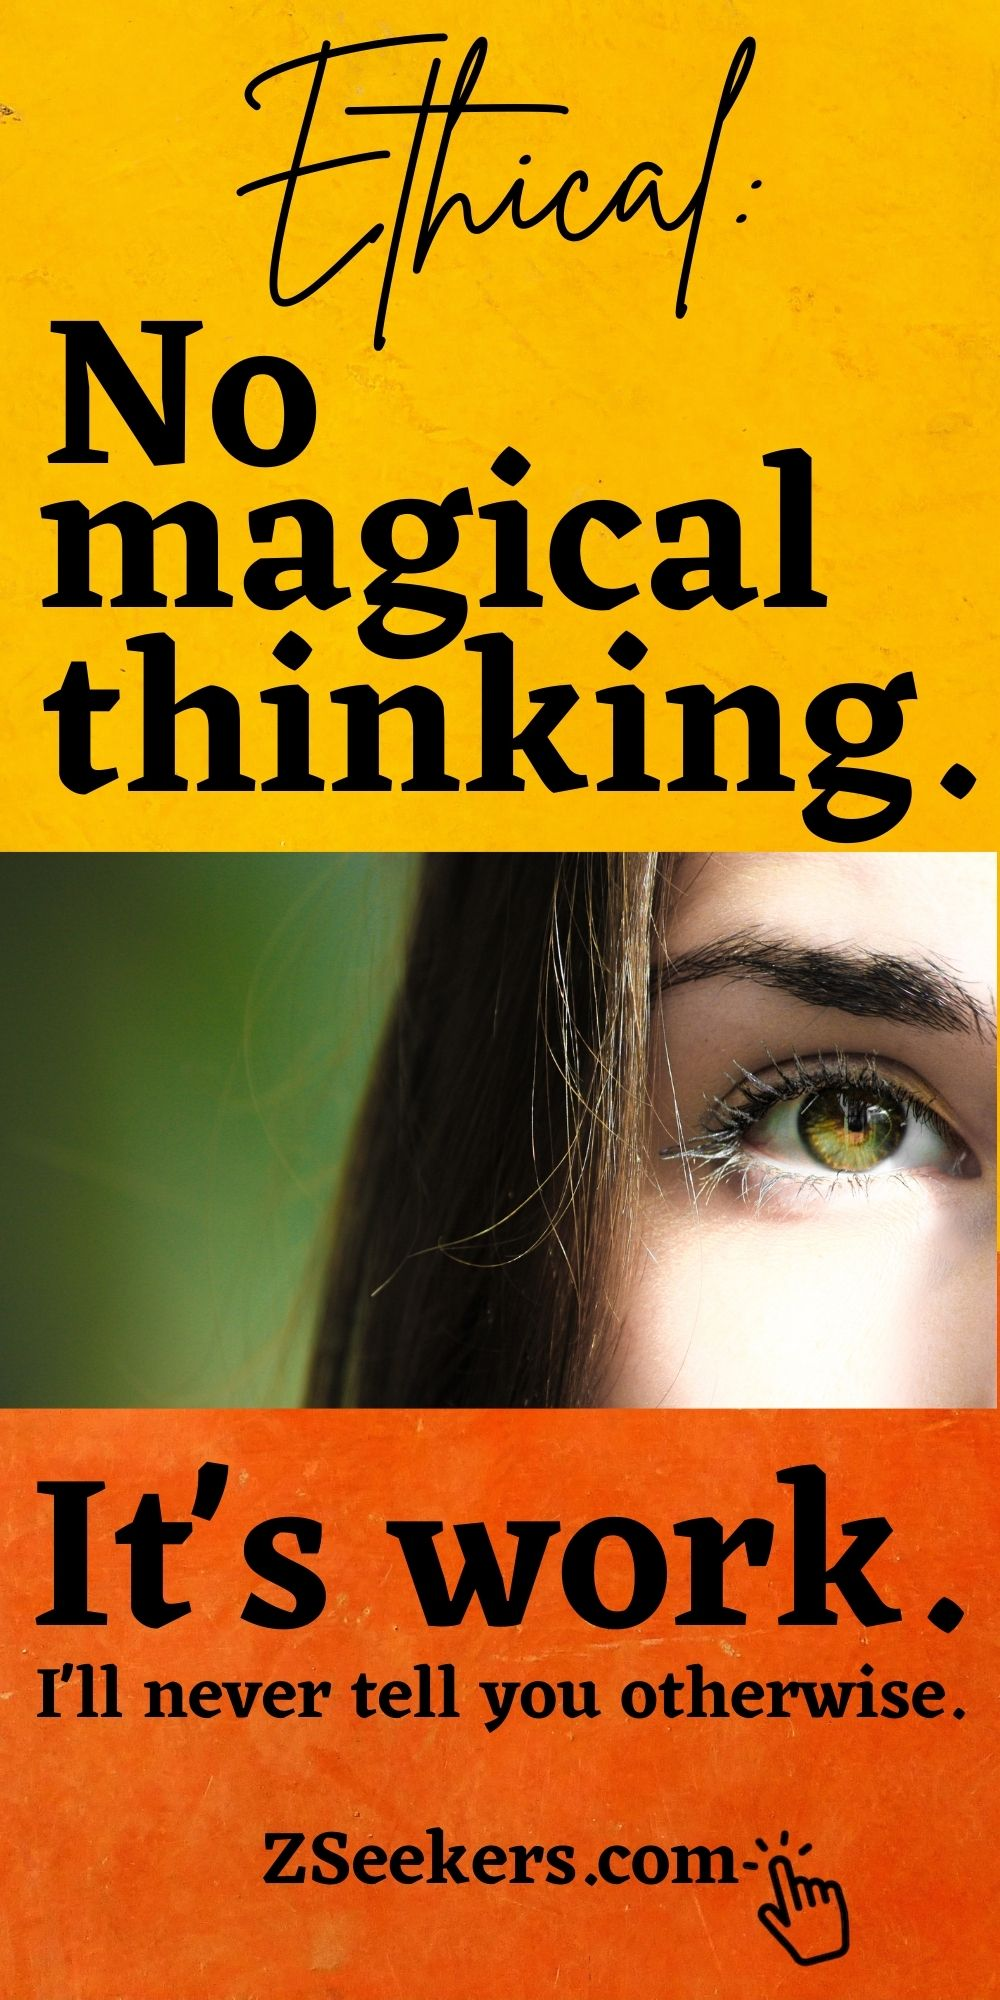 Ethical - No magical thinking. It's work. I'll never tell you otherwise. ZSeekers.com